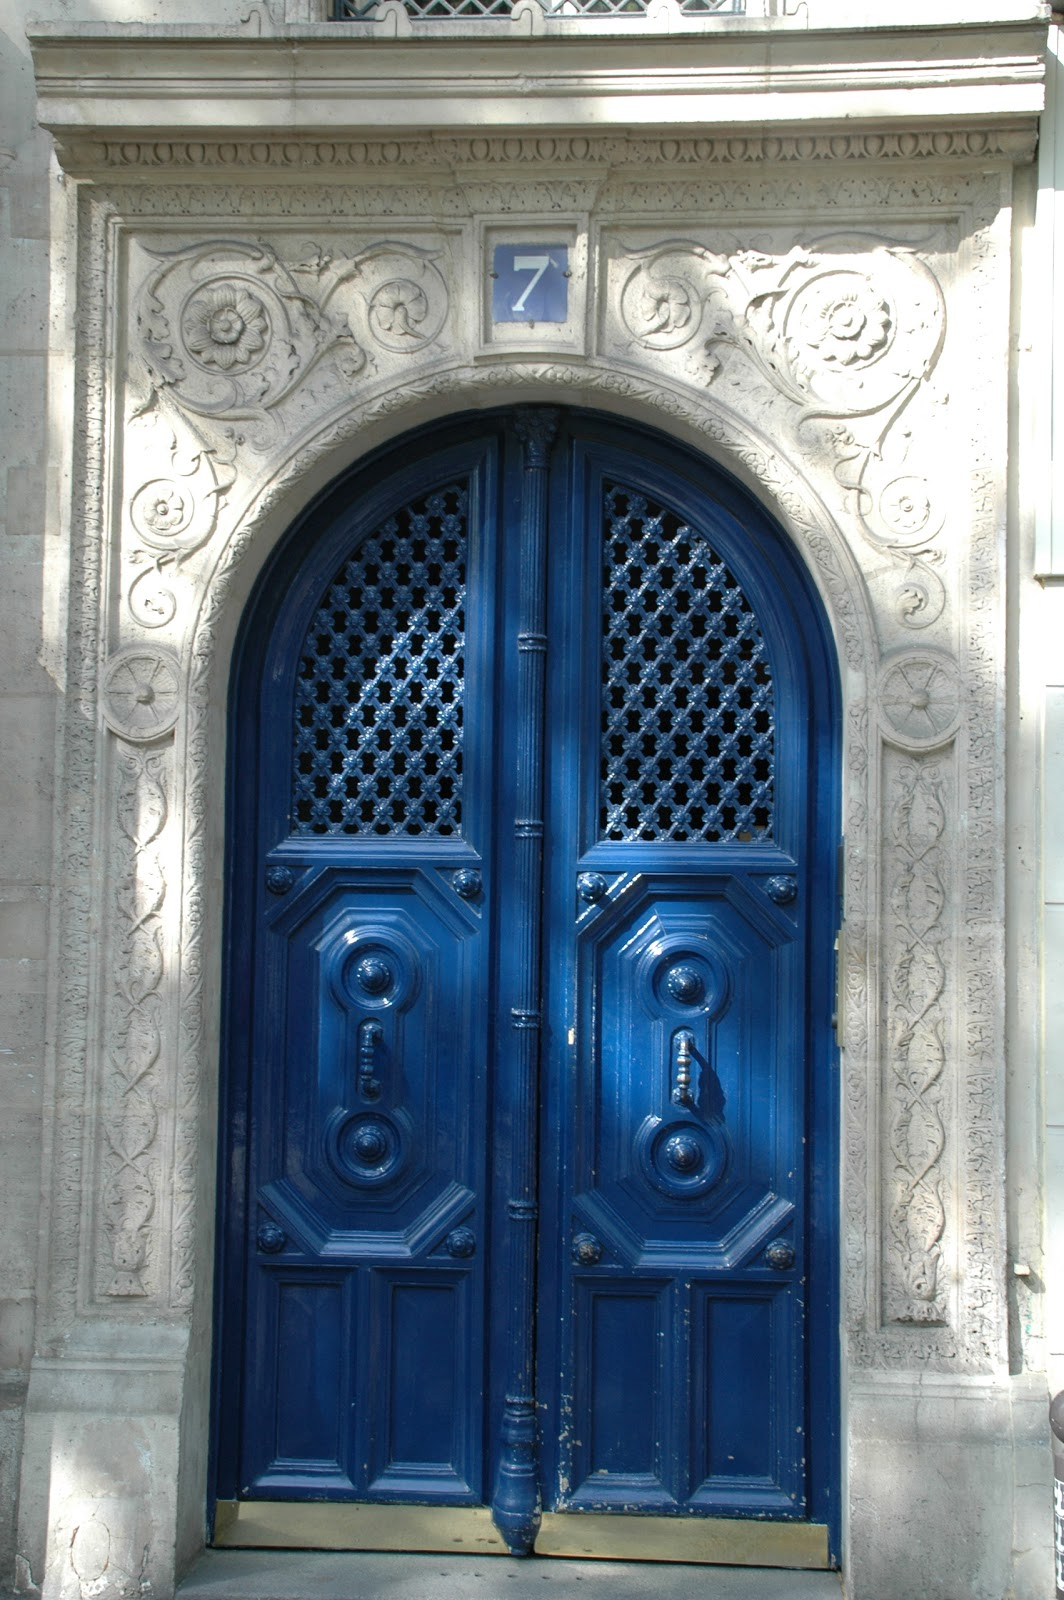 Paris and beyond la porte bleue - La porte bleue en belgique ...